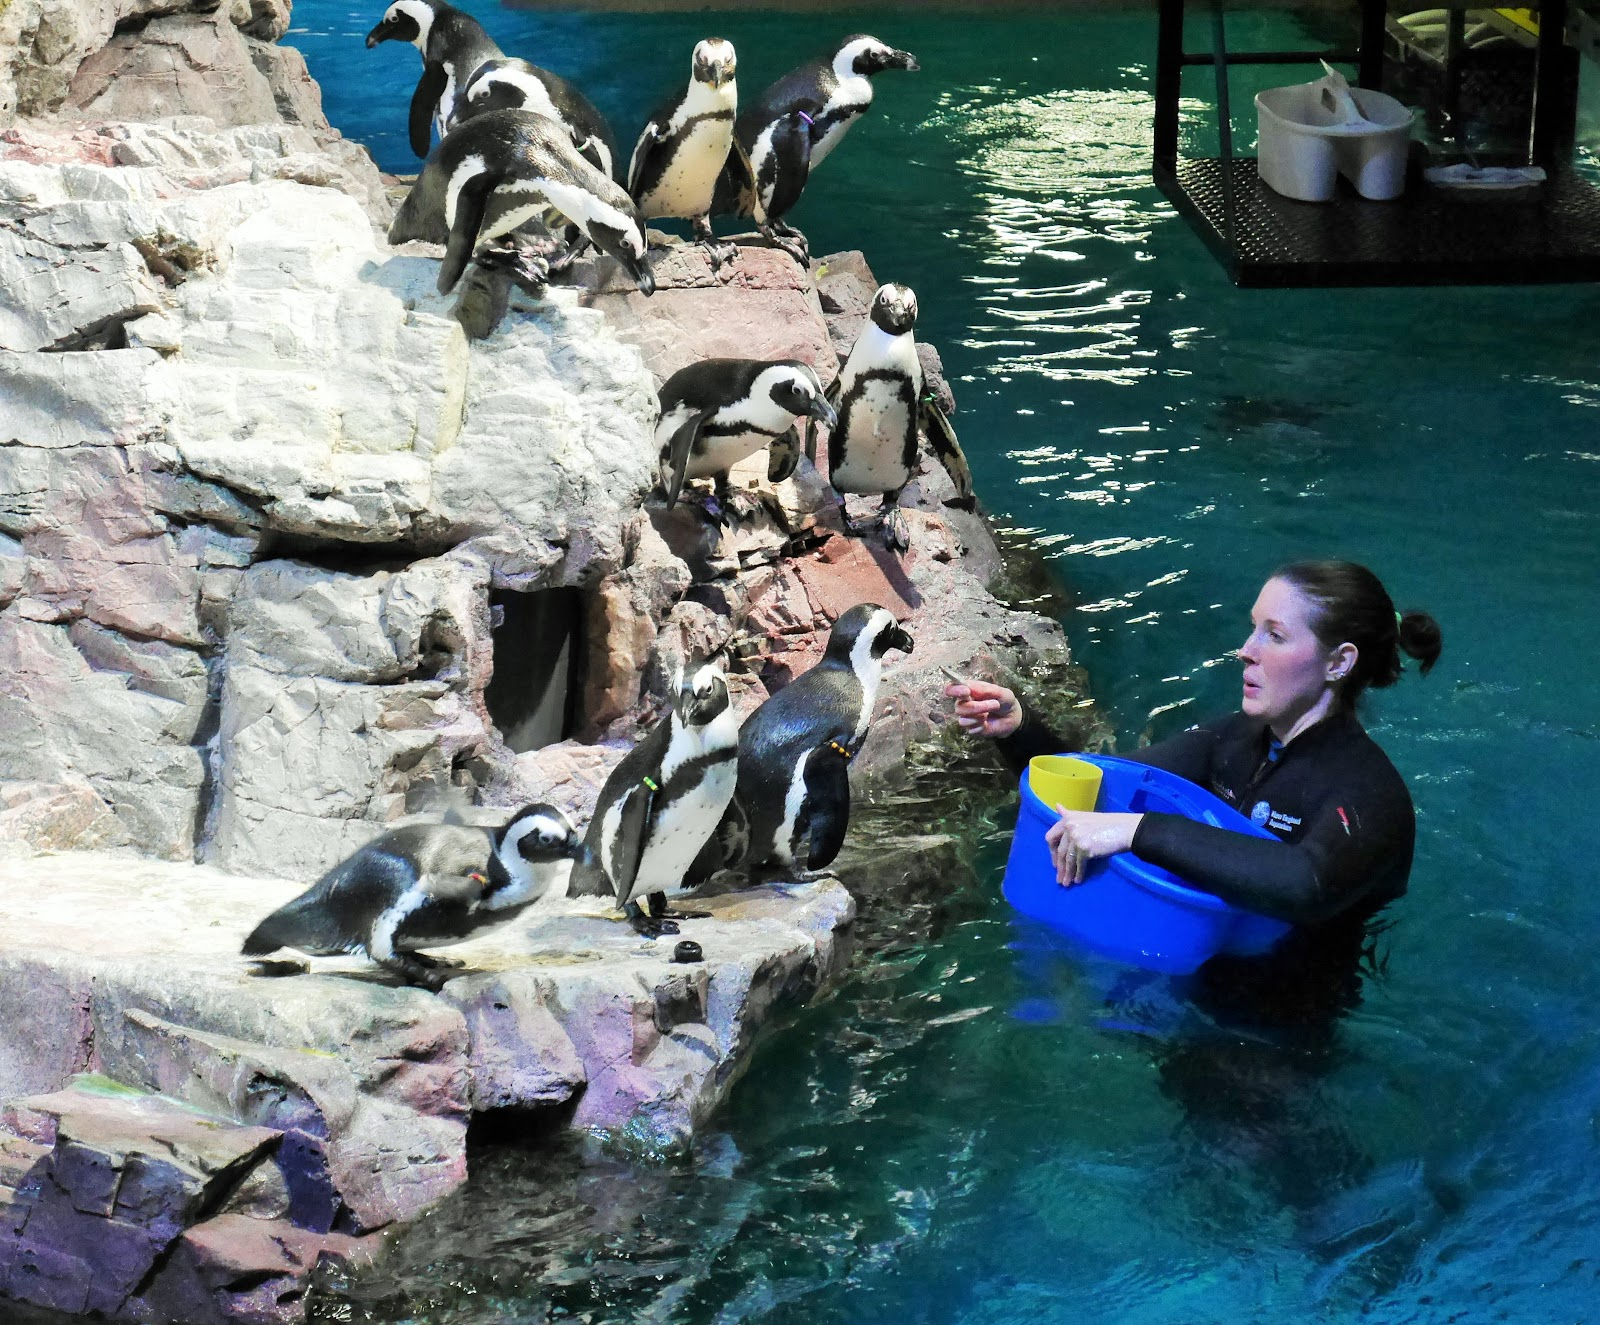 Visit the New England Aquarium